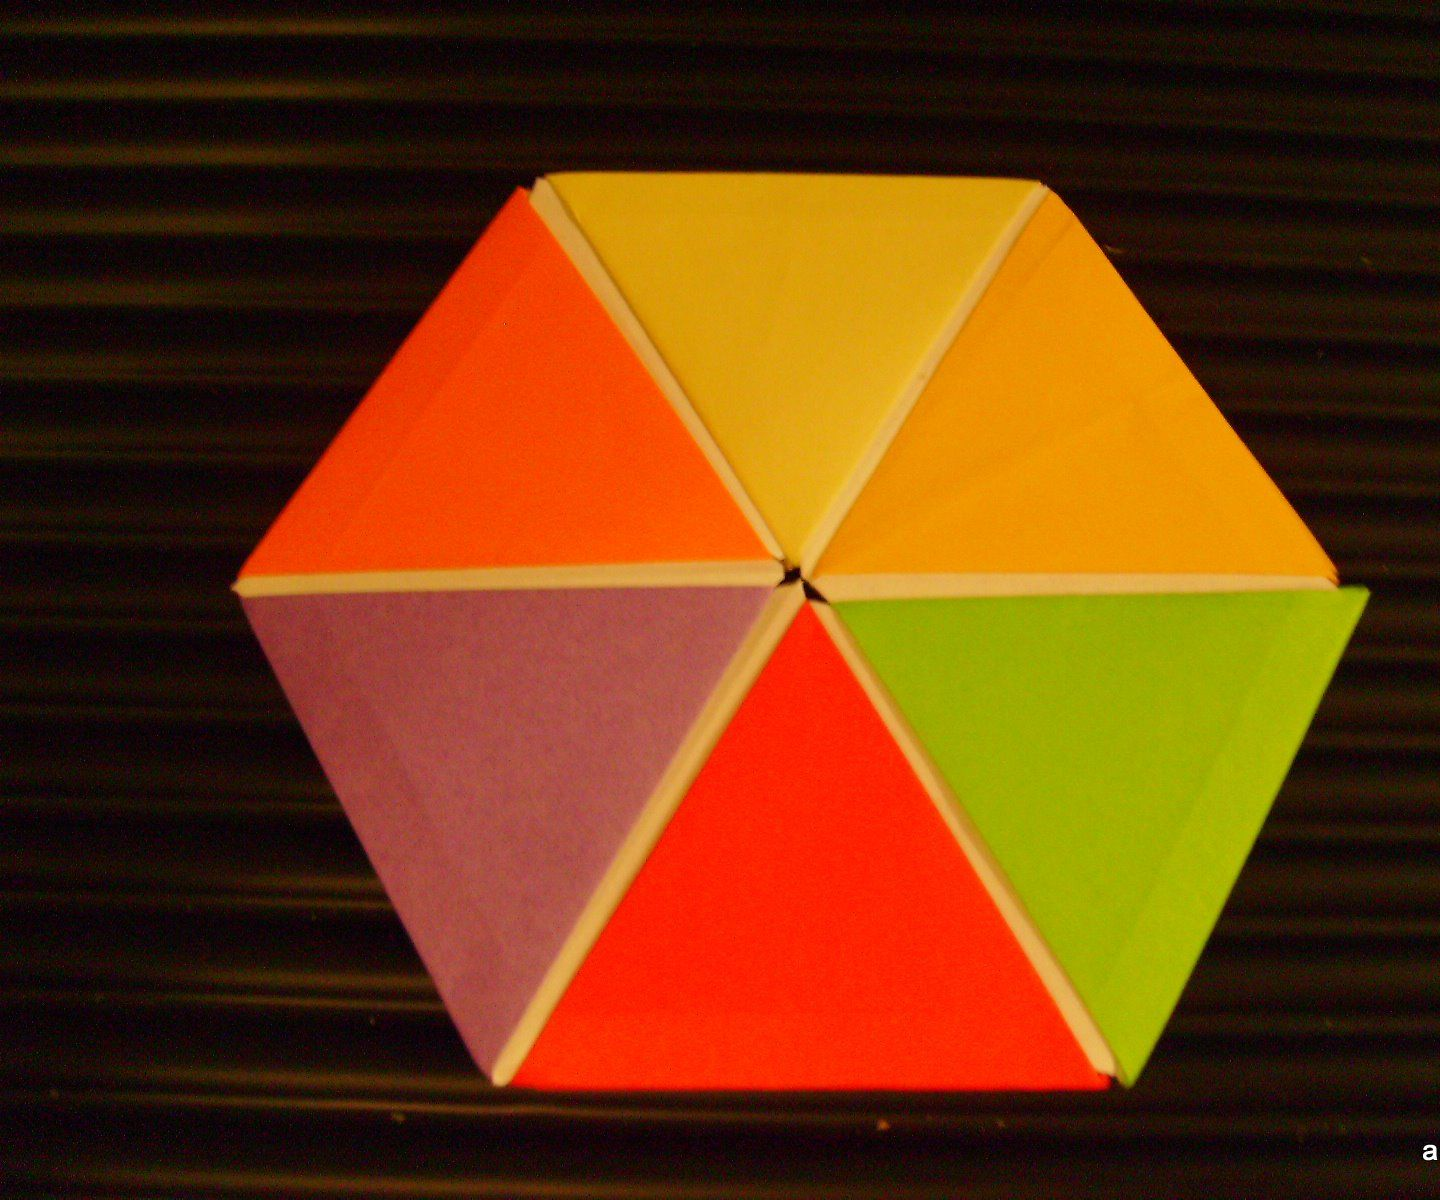 Origami of Regular Hexagon From Equilateral Triangles